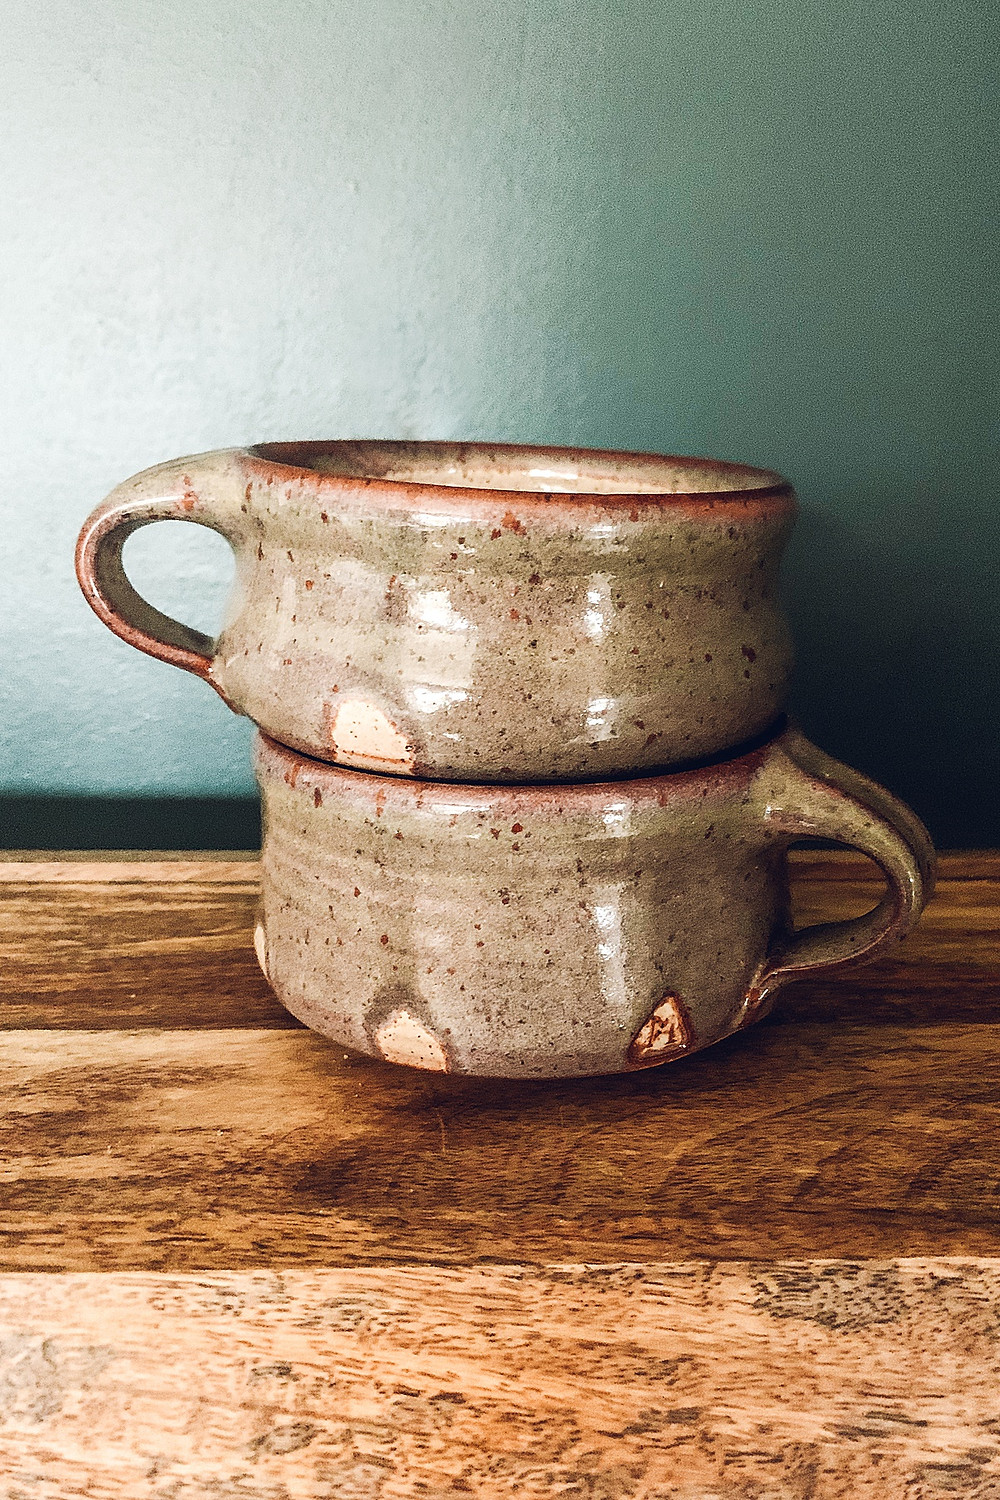 Small business, pottery, handmade pottery, menkis works, pottery mugs, pottery soup mugs, handcrafted pottery, marriage goals, family comes first, creative family, date night ideas, wheel thrown pottery, hand thrown pottery, pottery wheel, art education, messiah university, handmade art, handmade gifts, valentine gifts ideas, pottery coupon code, central Pennsylvania, pottery business, pottery shop, pottery boutique, roasted tomato soup, hot chocolate mug, coffee mug, soup mug